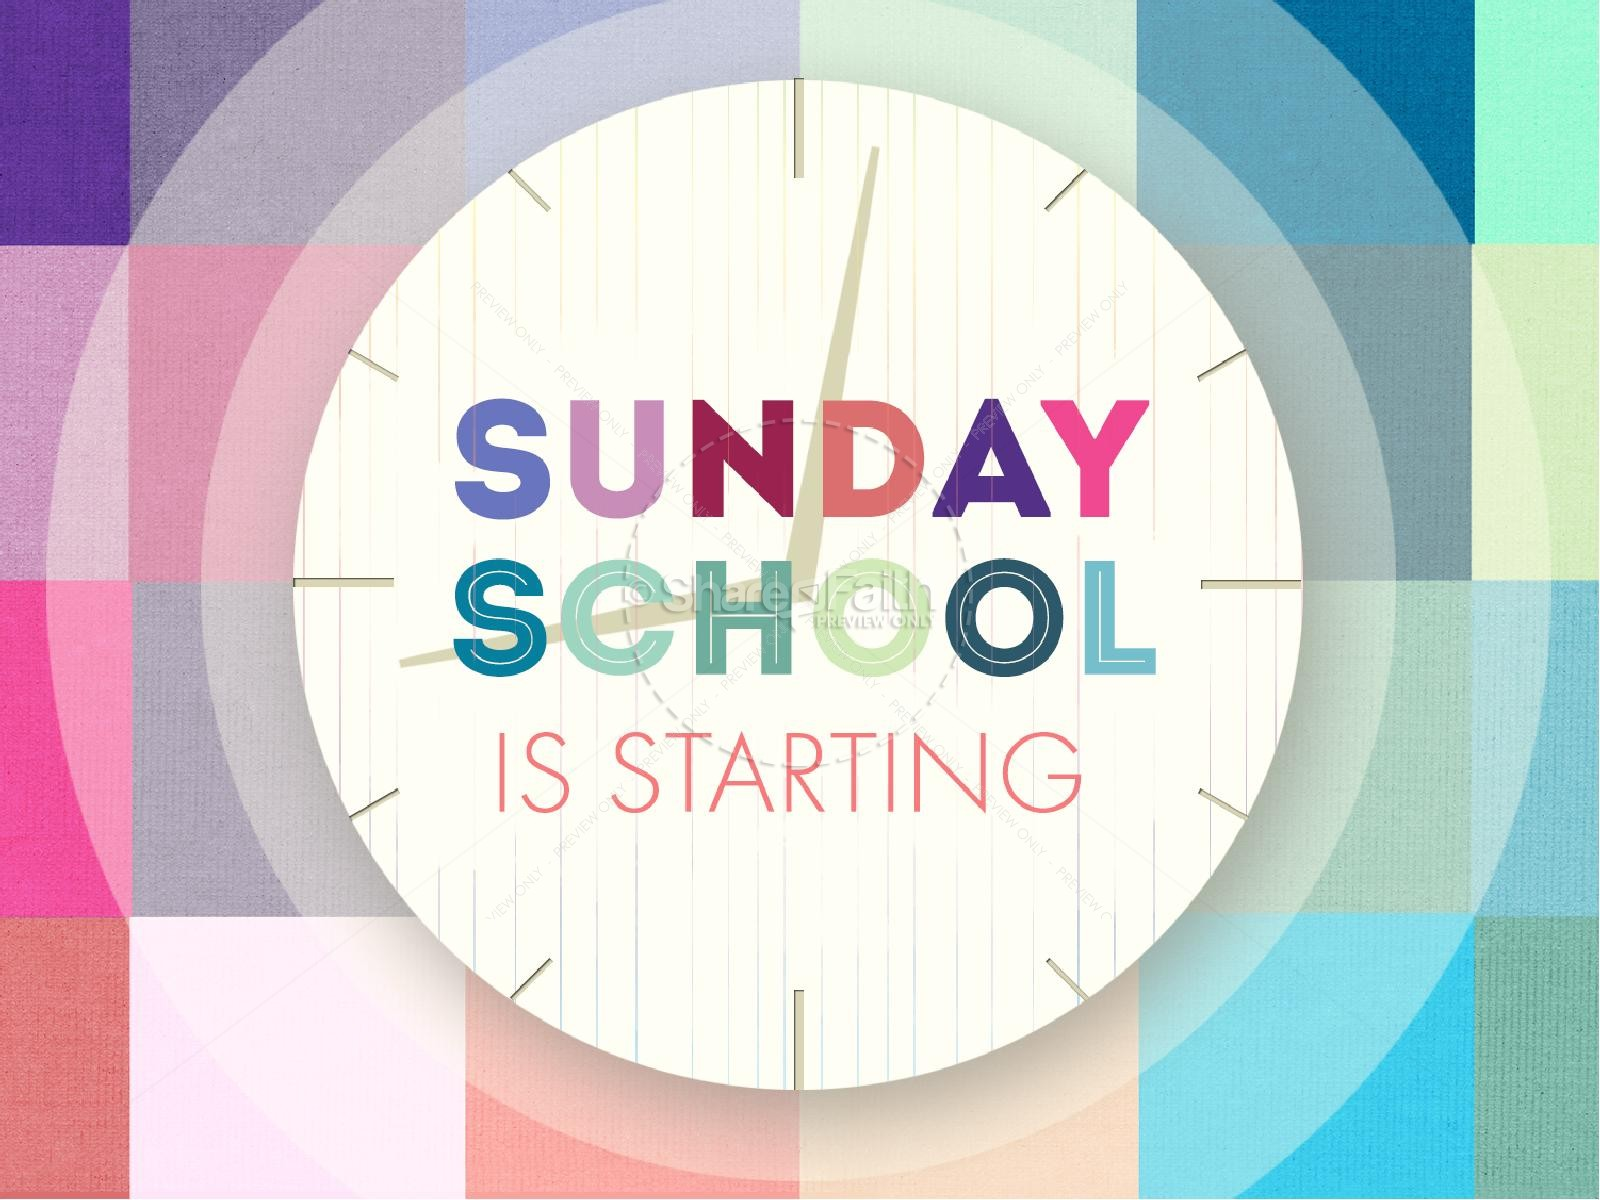 Sunday School Starting Graphics For Church